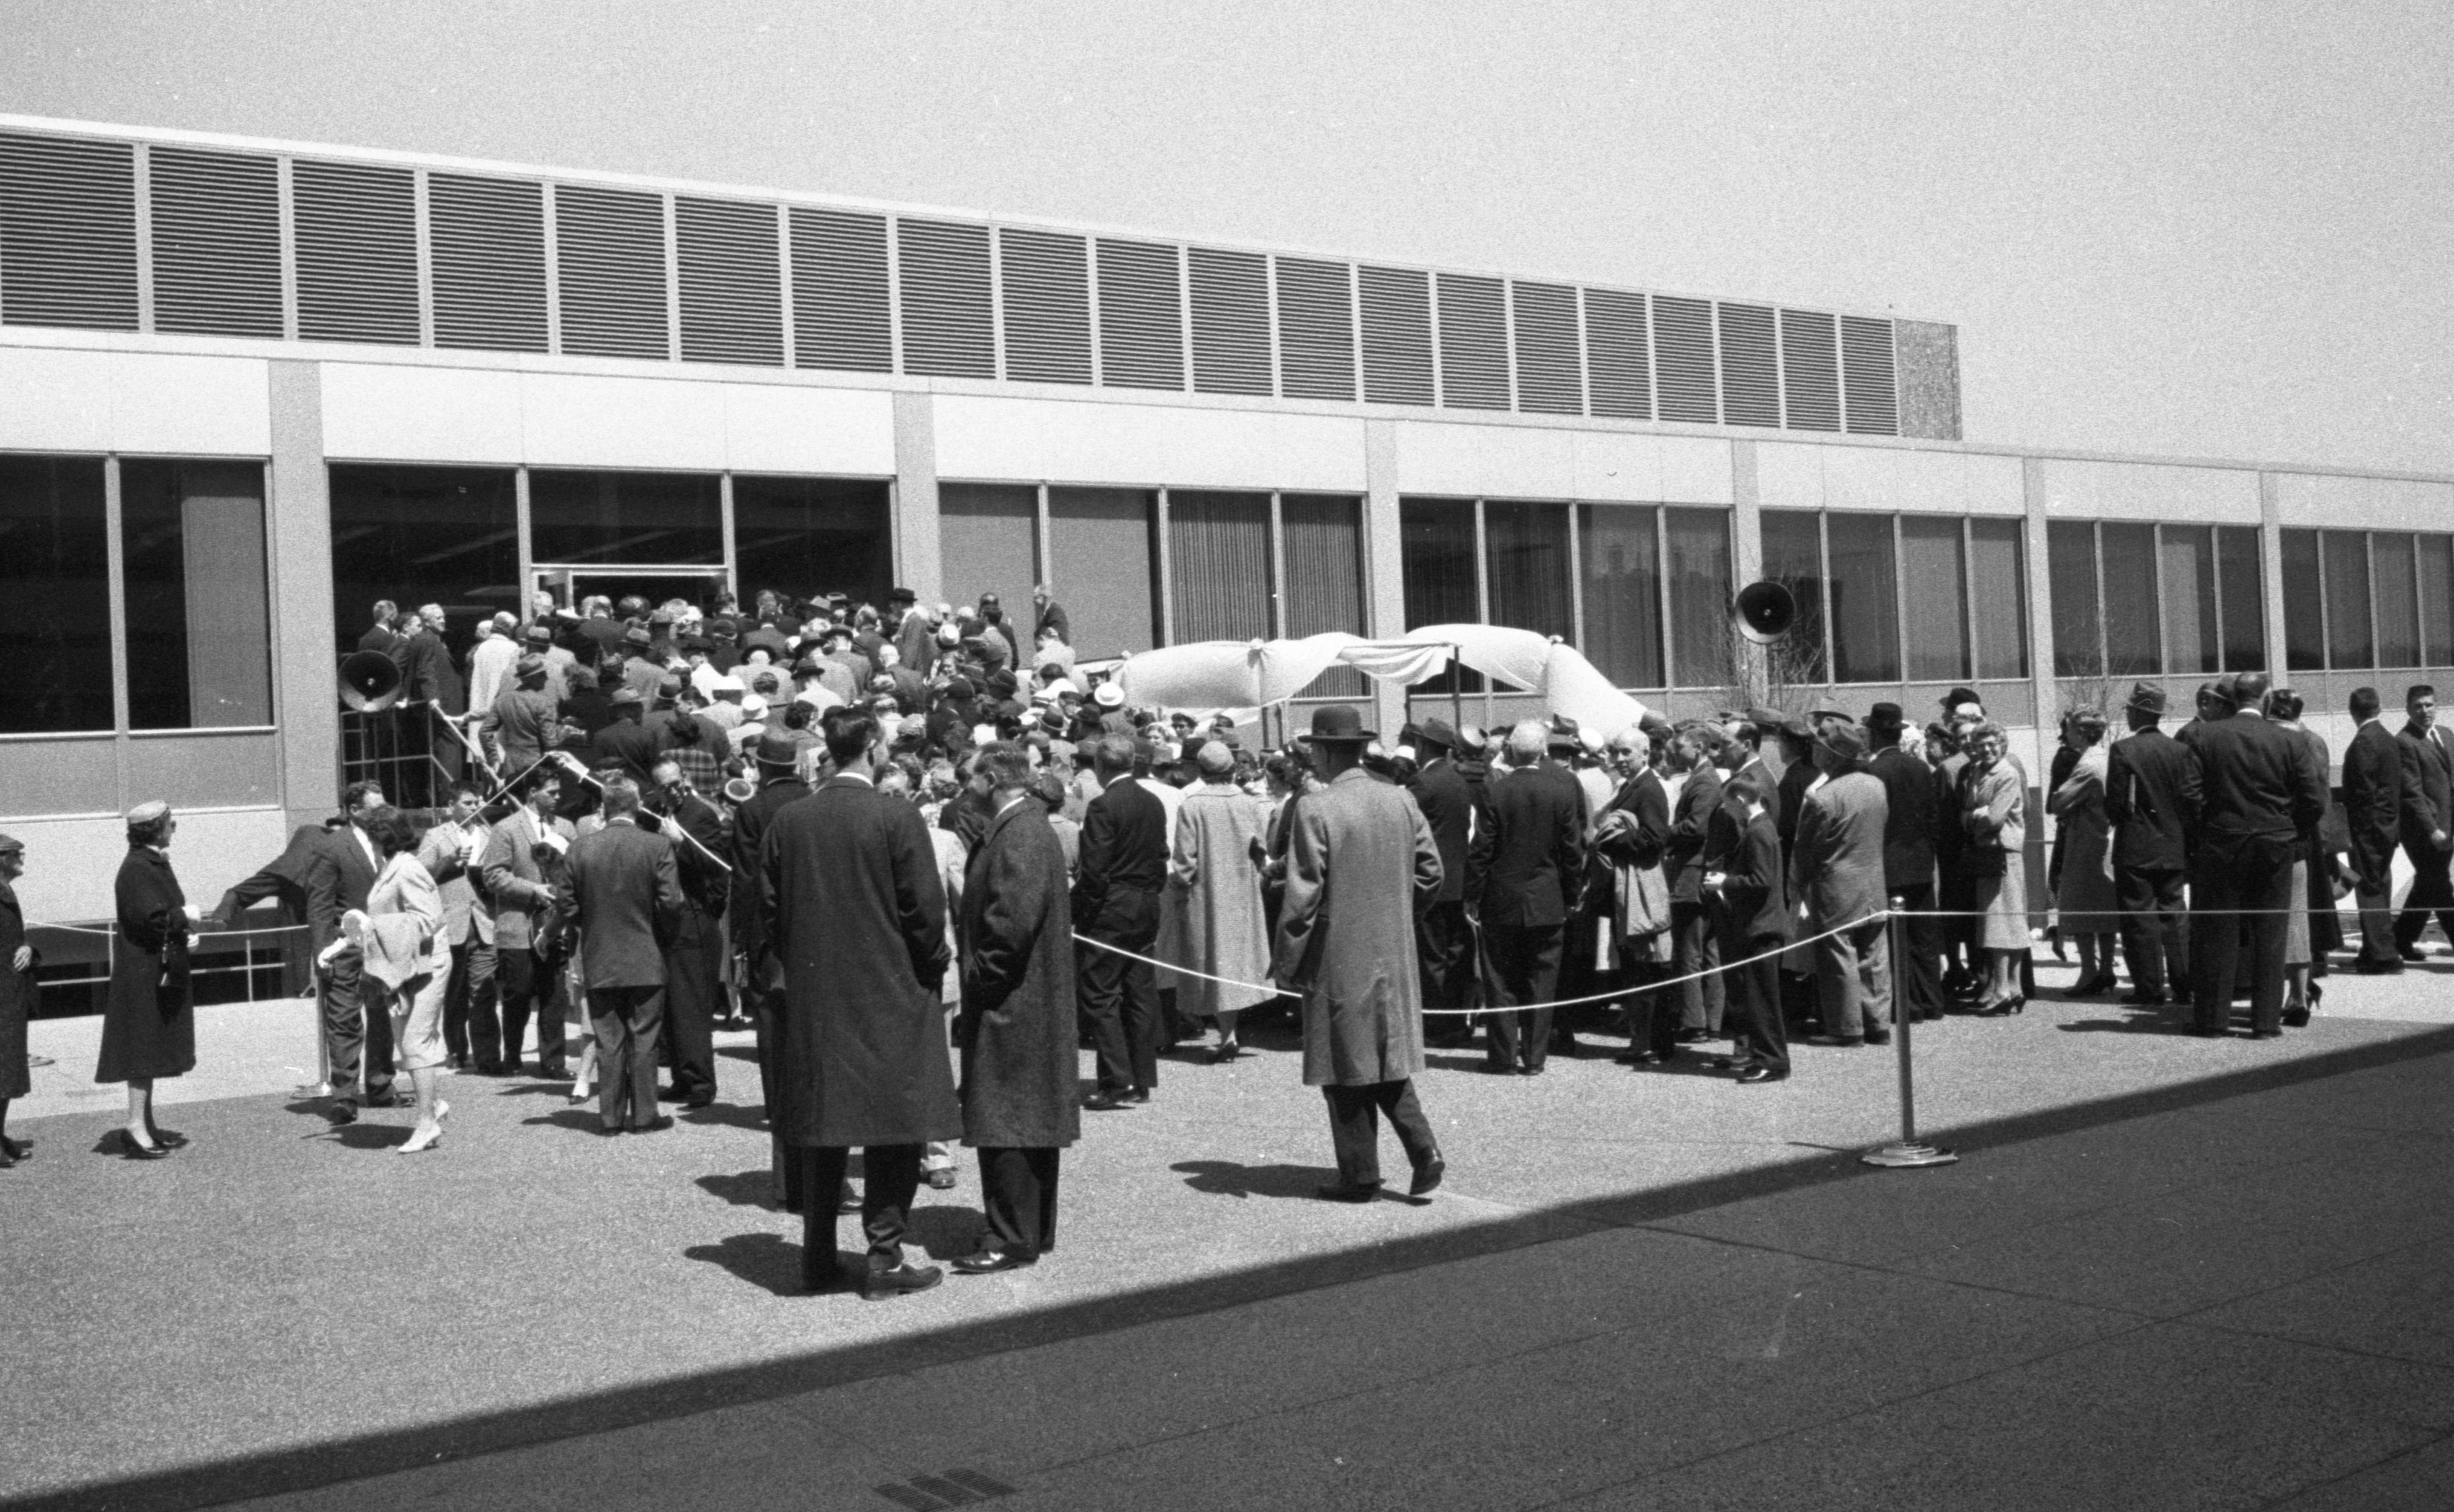 A Crowd Of Guests Enters The Building At The Formal Opening Of The New Ann Arbor Parke Davis Research Laboratories, April 1960 image